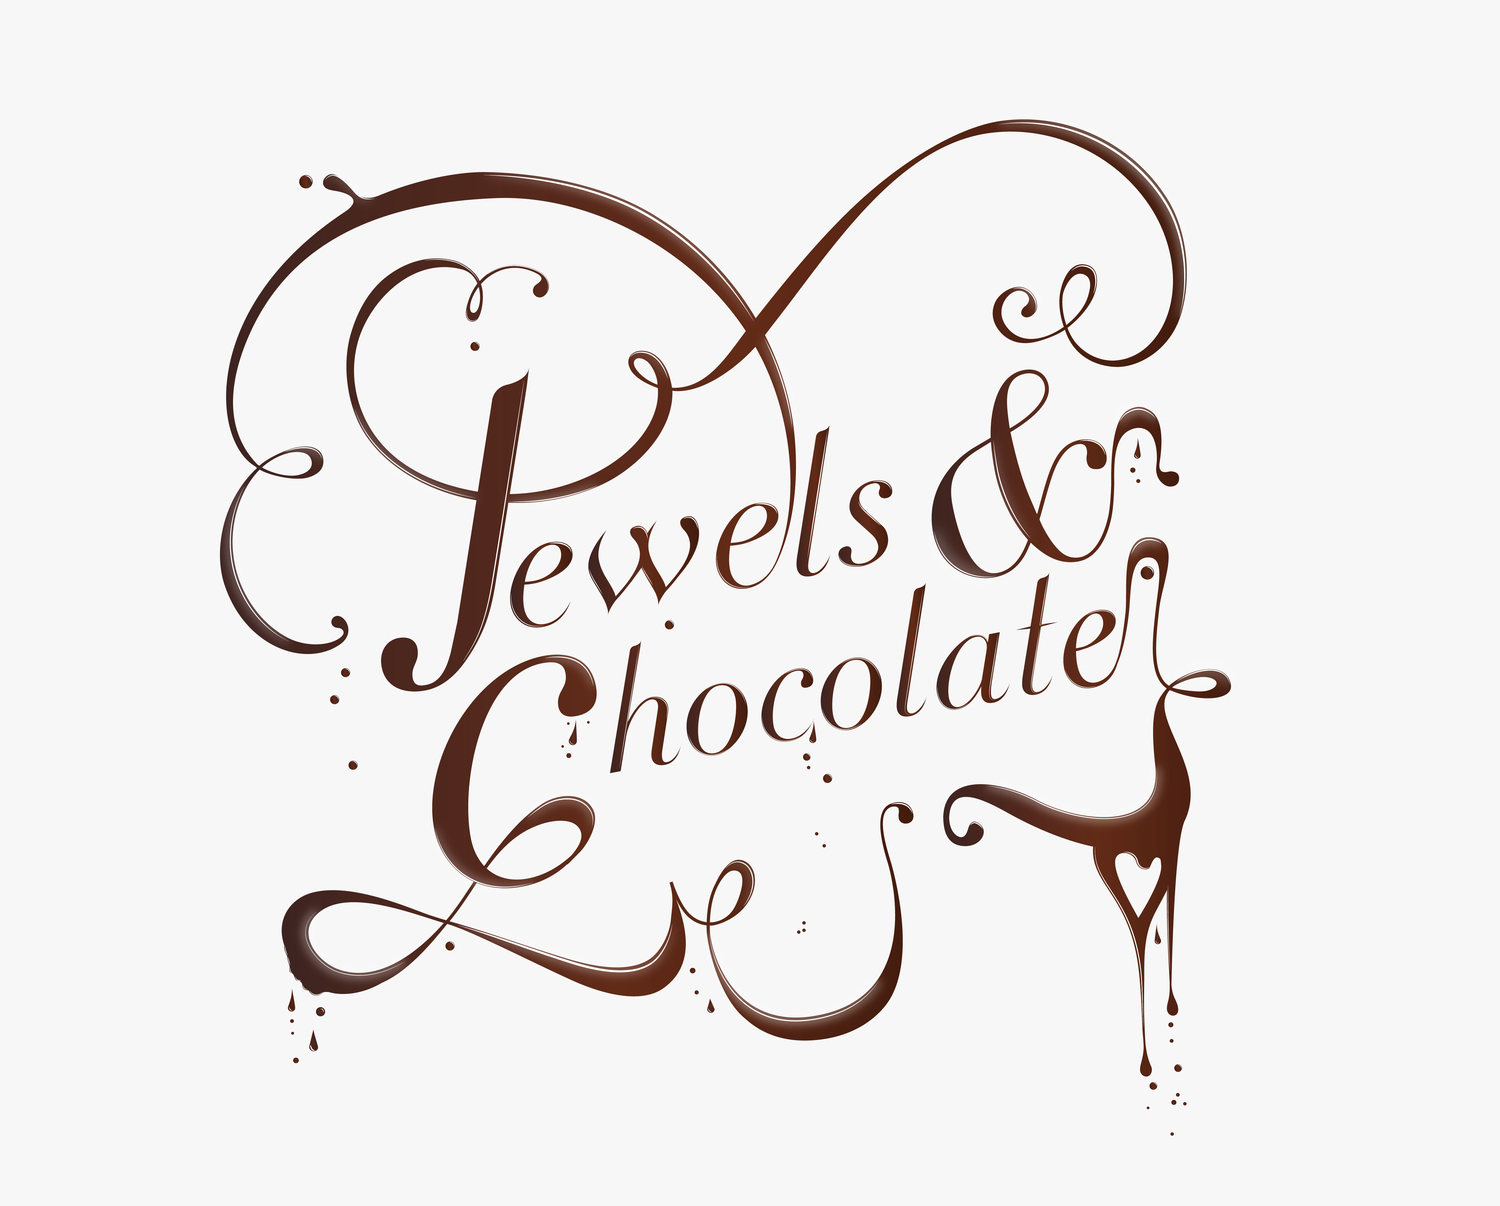 jewels&chocolate-01.jpg